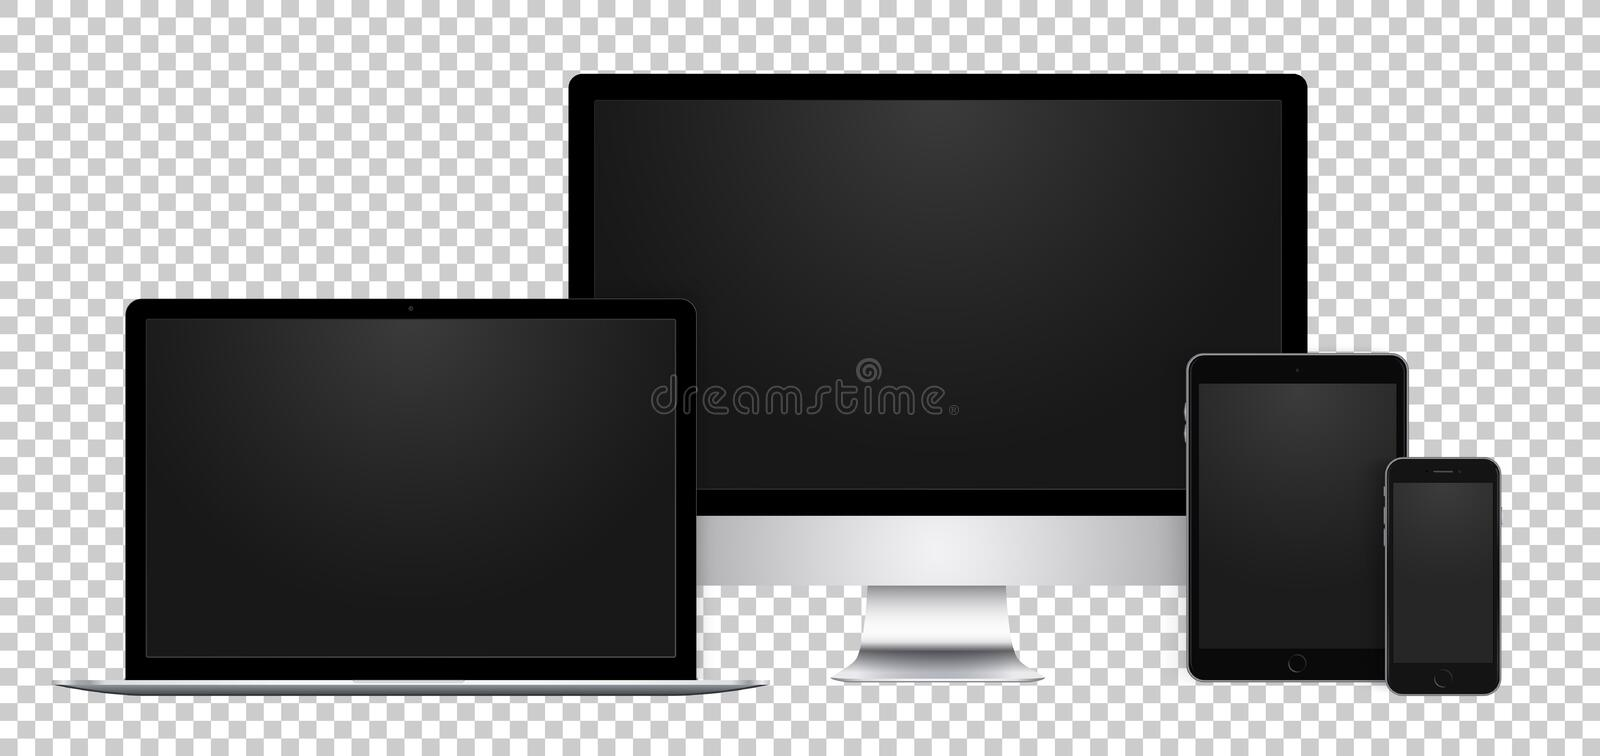 Realistic set of black display, laptop, tablet and phone with empty screen on transparent background. stock illustration